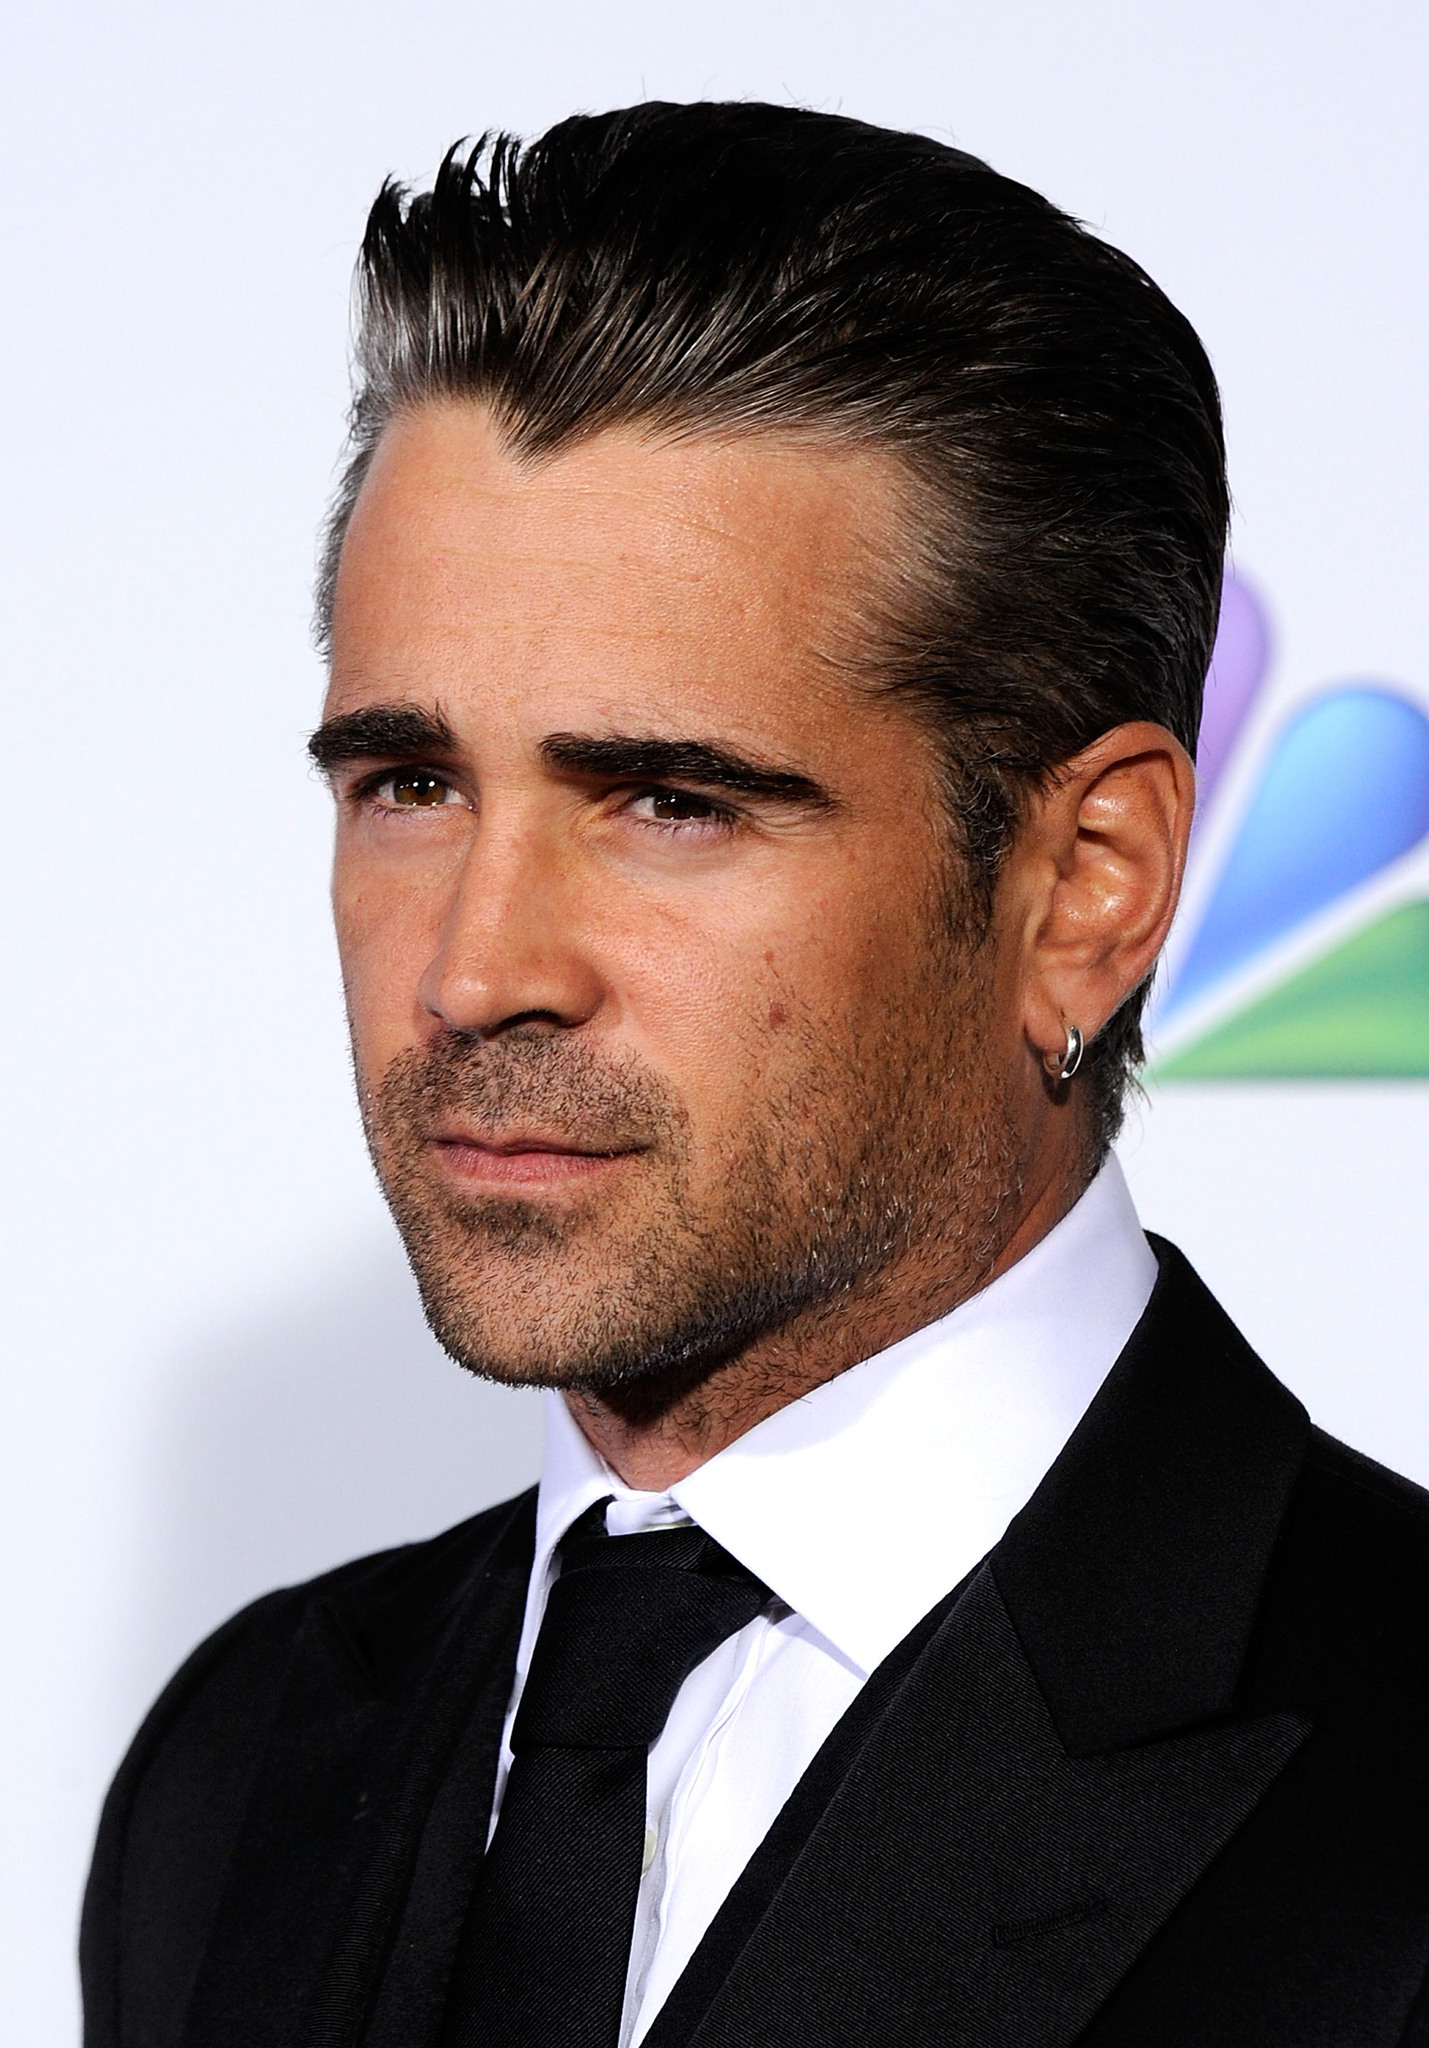 The 44-year old son of father (?) and mother(?) Colin Farrell in 2020 photo. Colin Farrell earned a million dollar salary - leaving the net worth at million in 2020